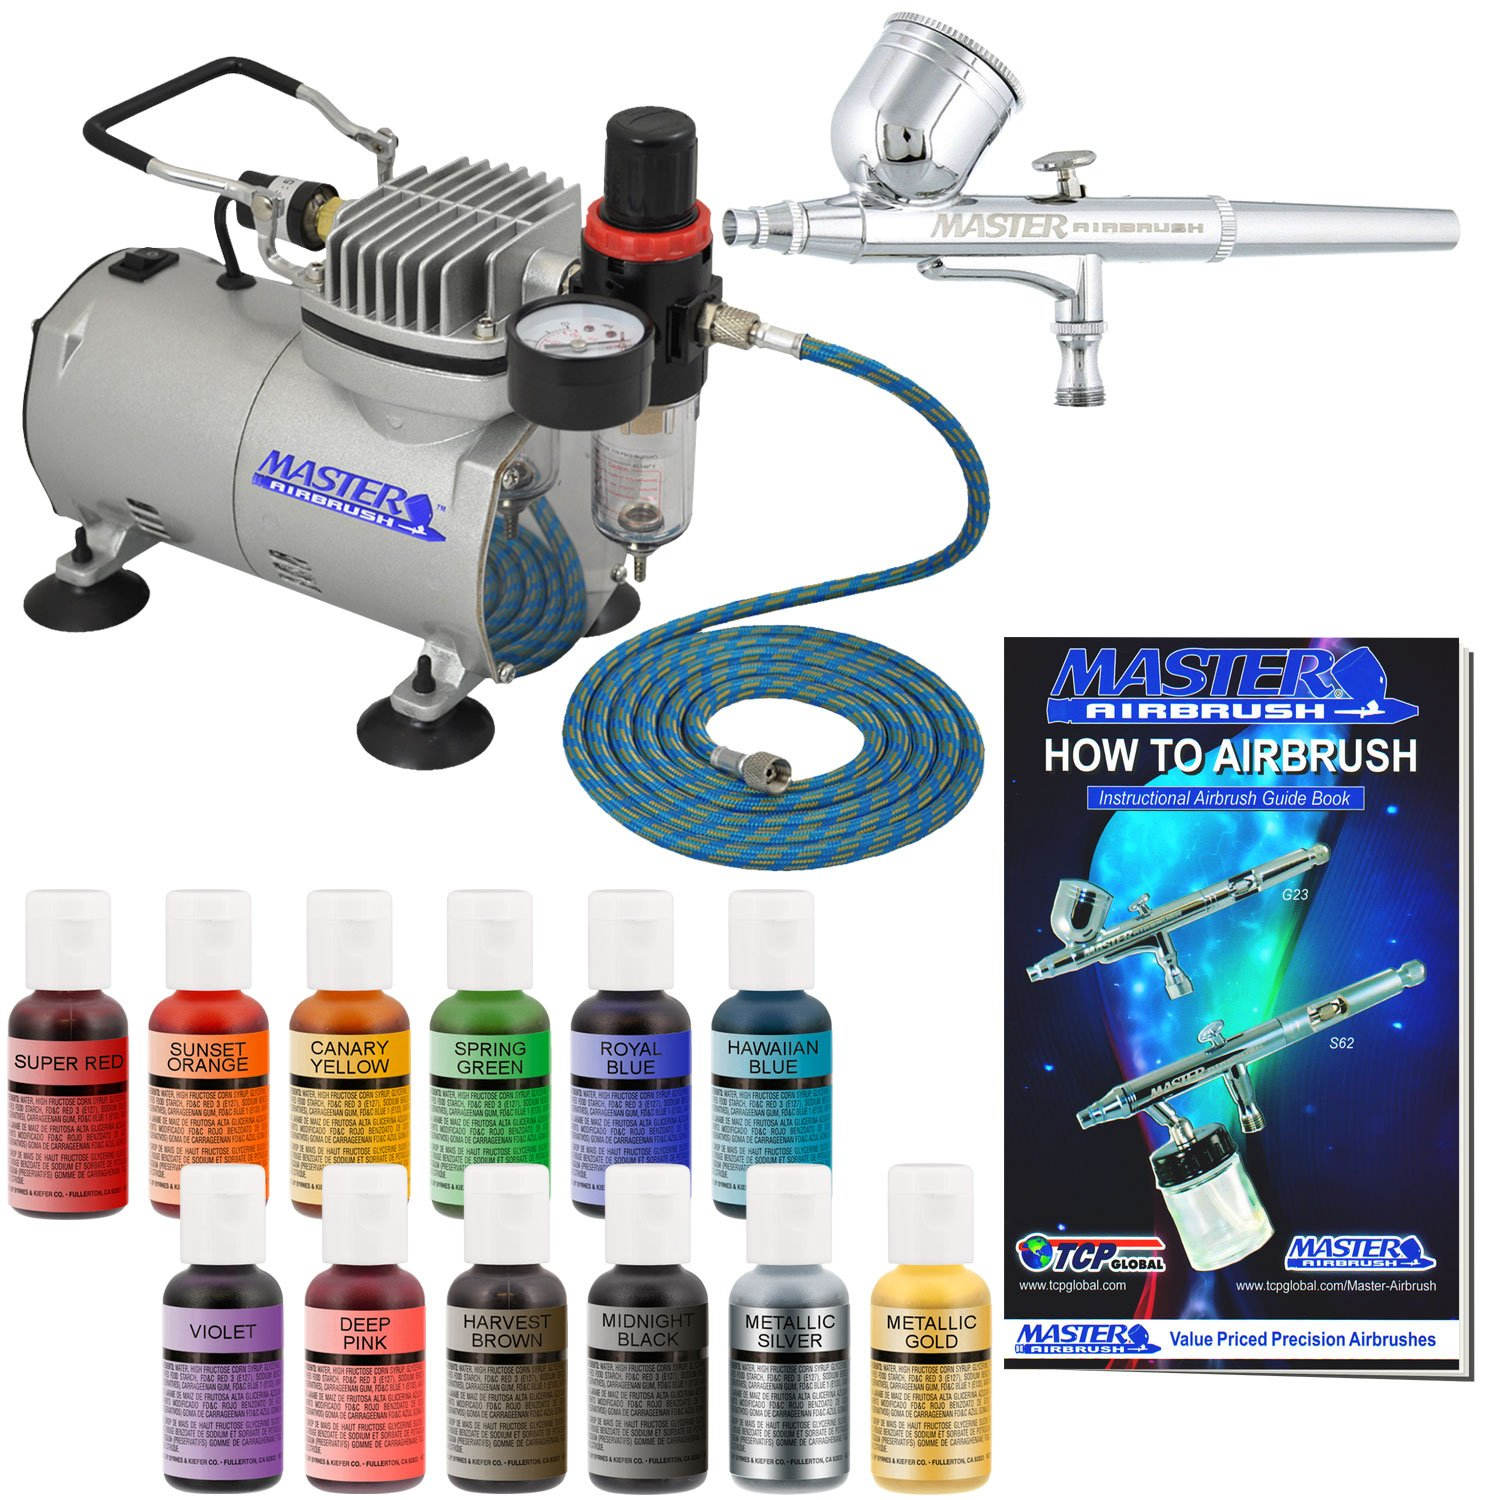 Pro Master Airbrush Cake Decorating Airbrushing System Kit with a 12 Color Chefmaster Food Coloring Set - G22 Gravity Feed Airbrush, Air Compressor, Guide Booklet - Decorate Cakes, Cupcakes, Cookies